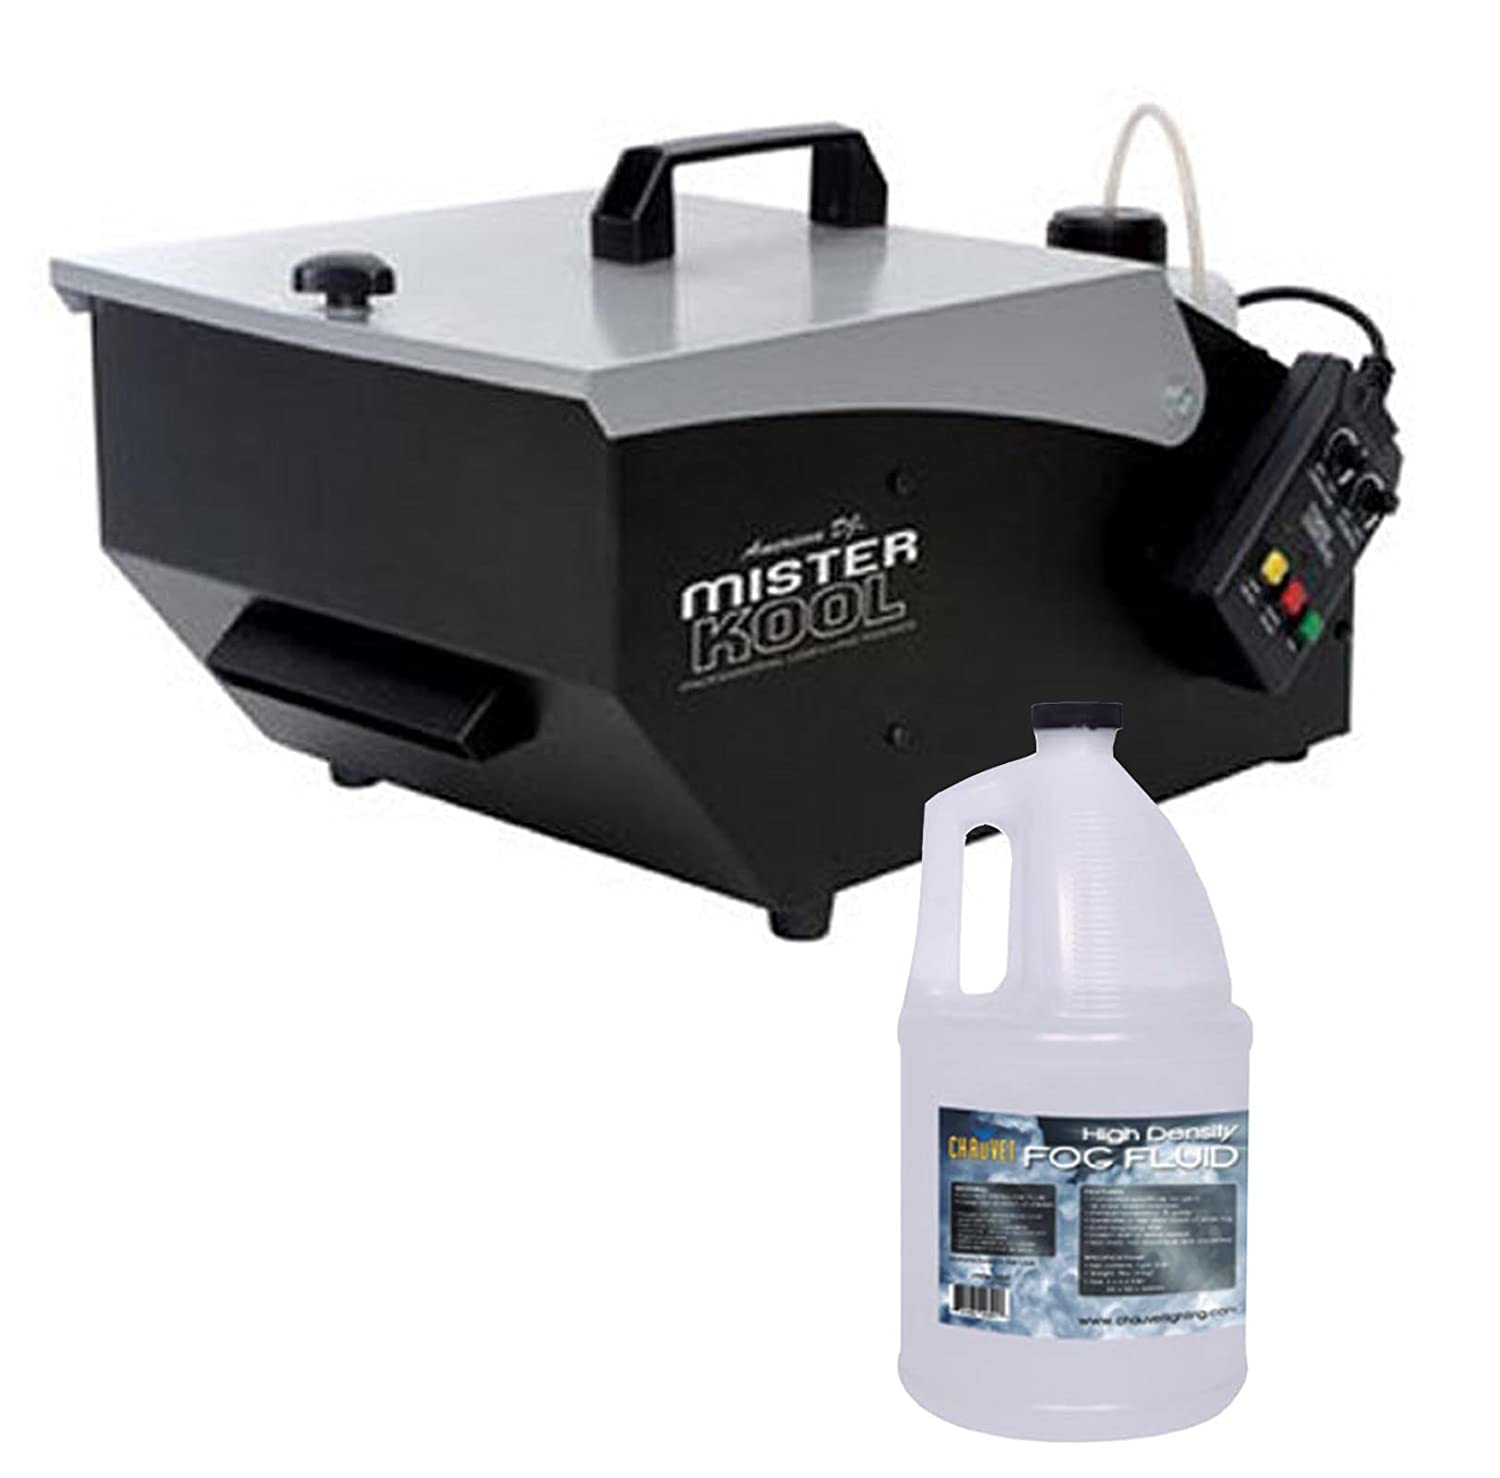 Top 10 Best Fog Machine For Halloween Reviews in 2021 8